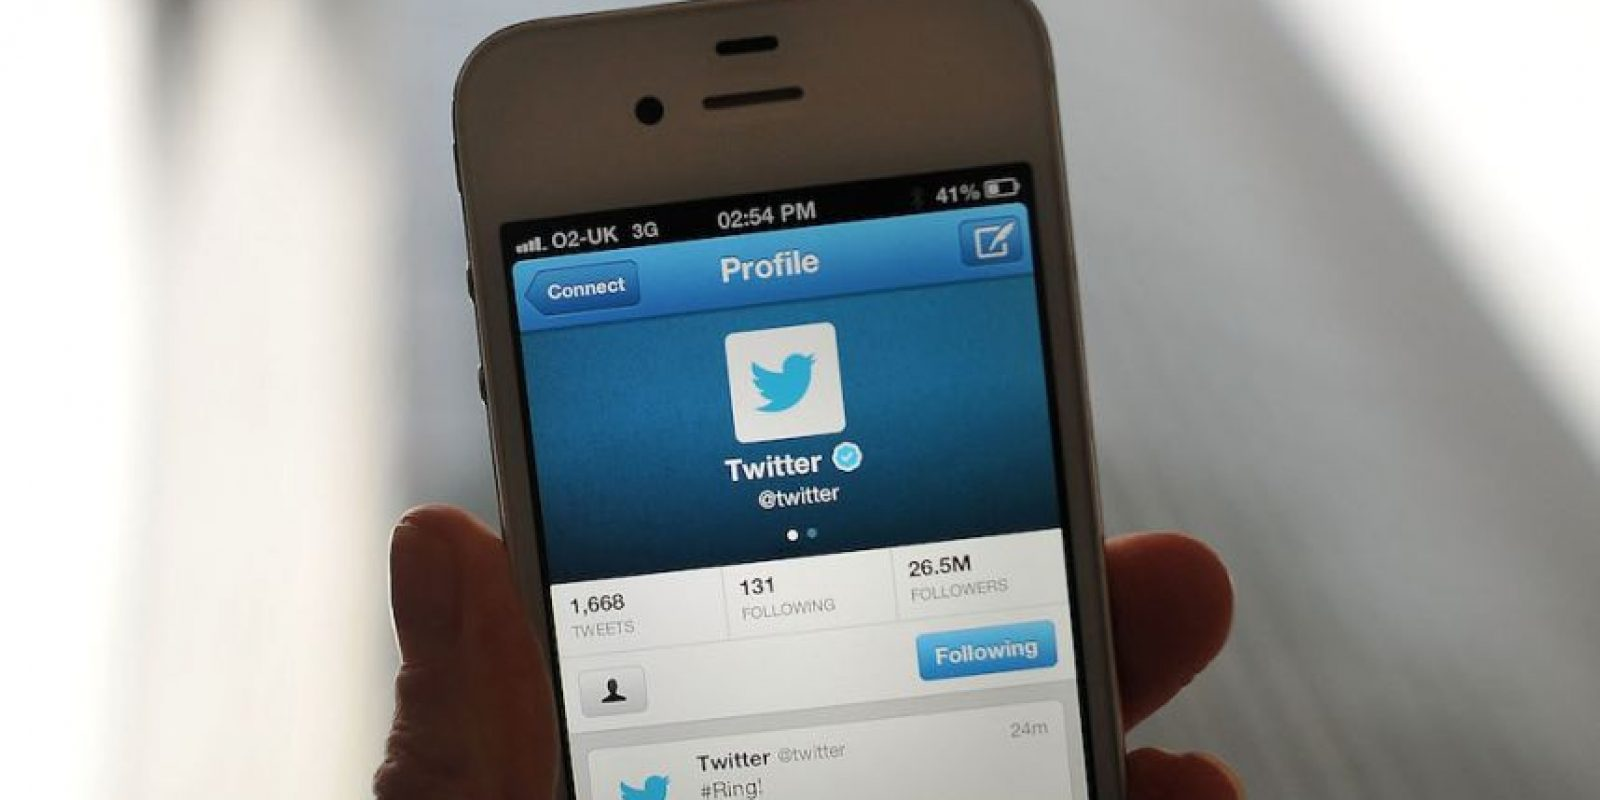 La red social Twitter cumple 9 años. Foto: Getty Images